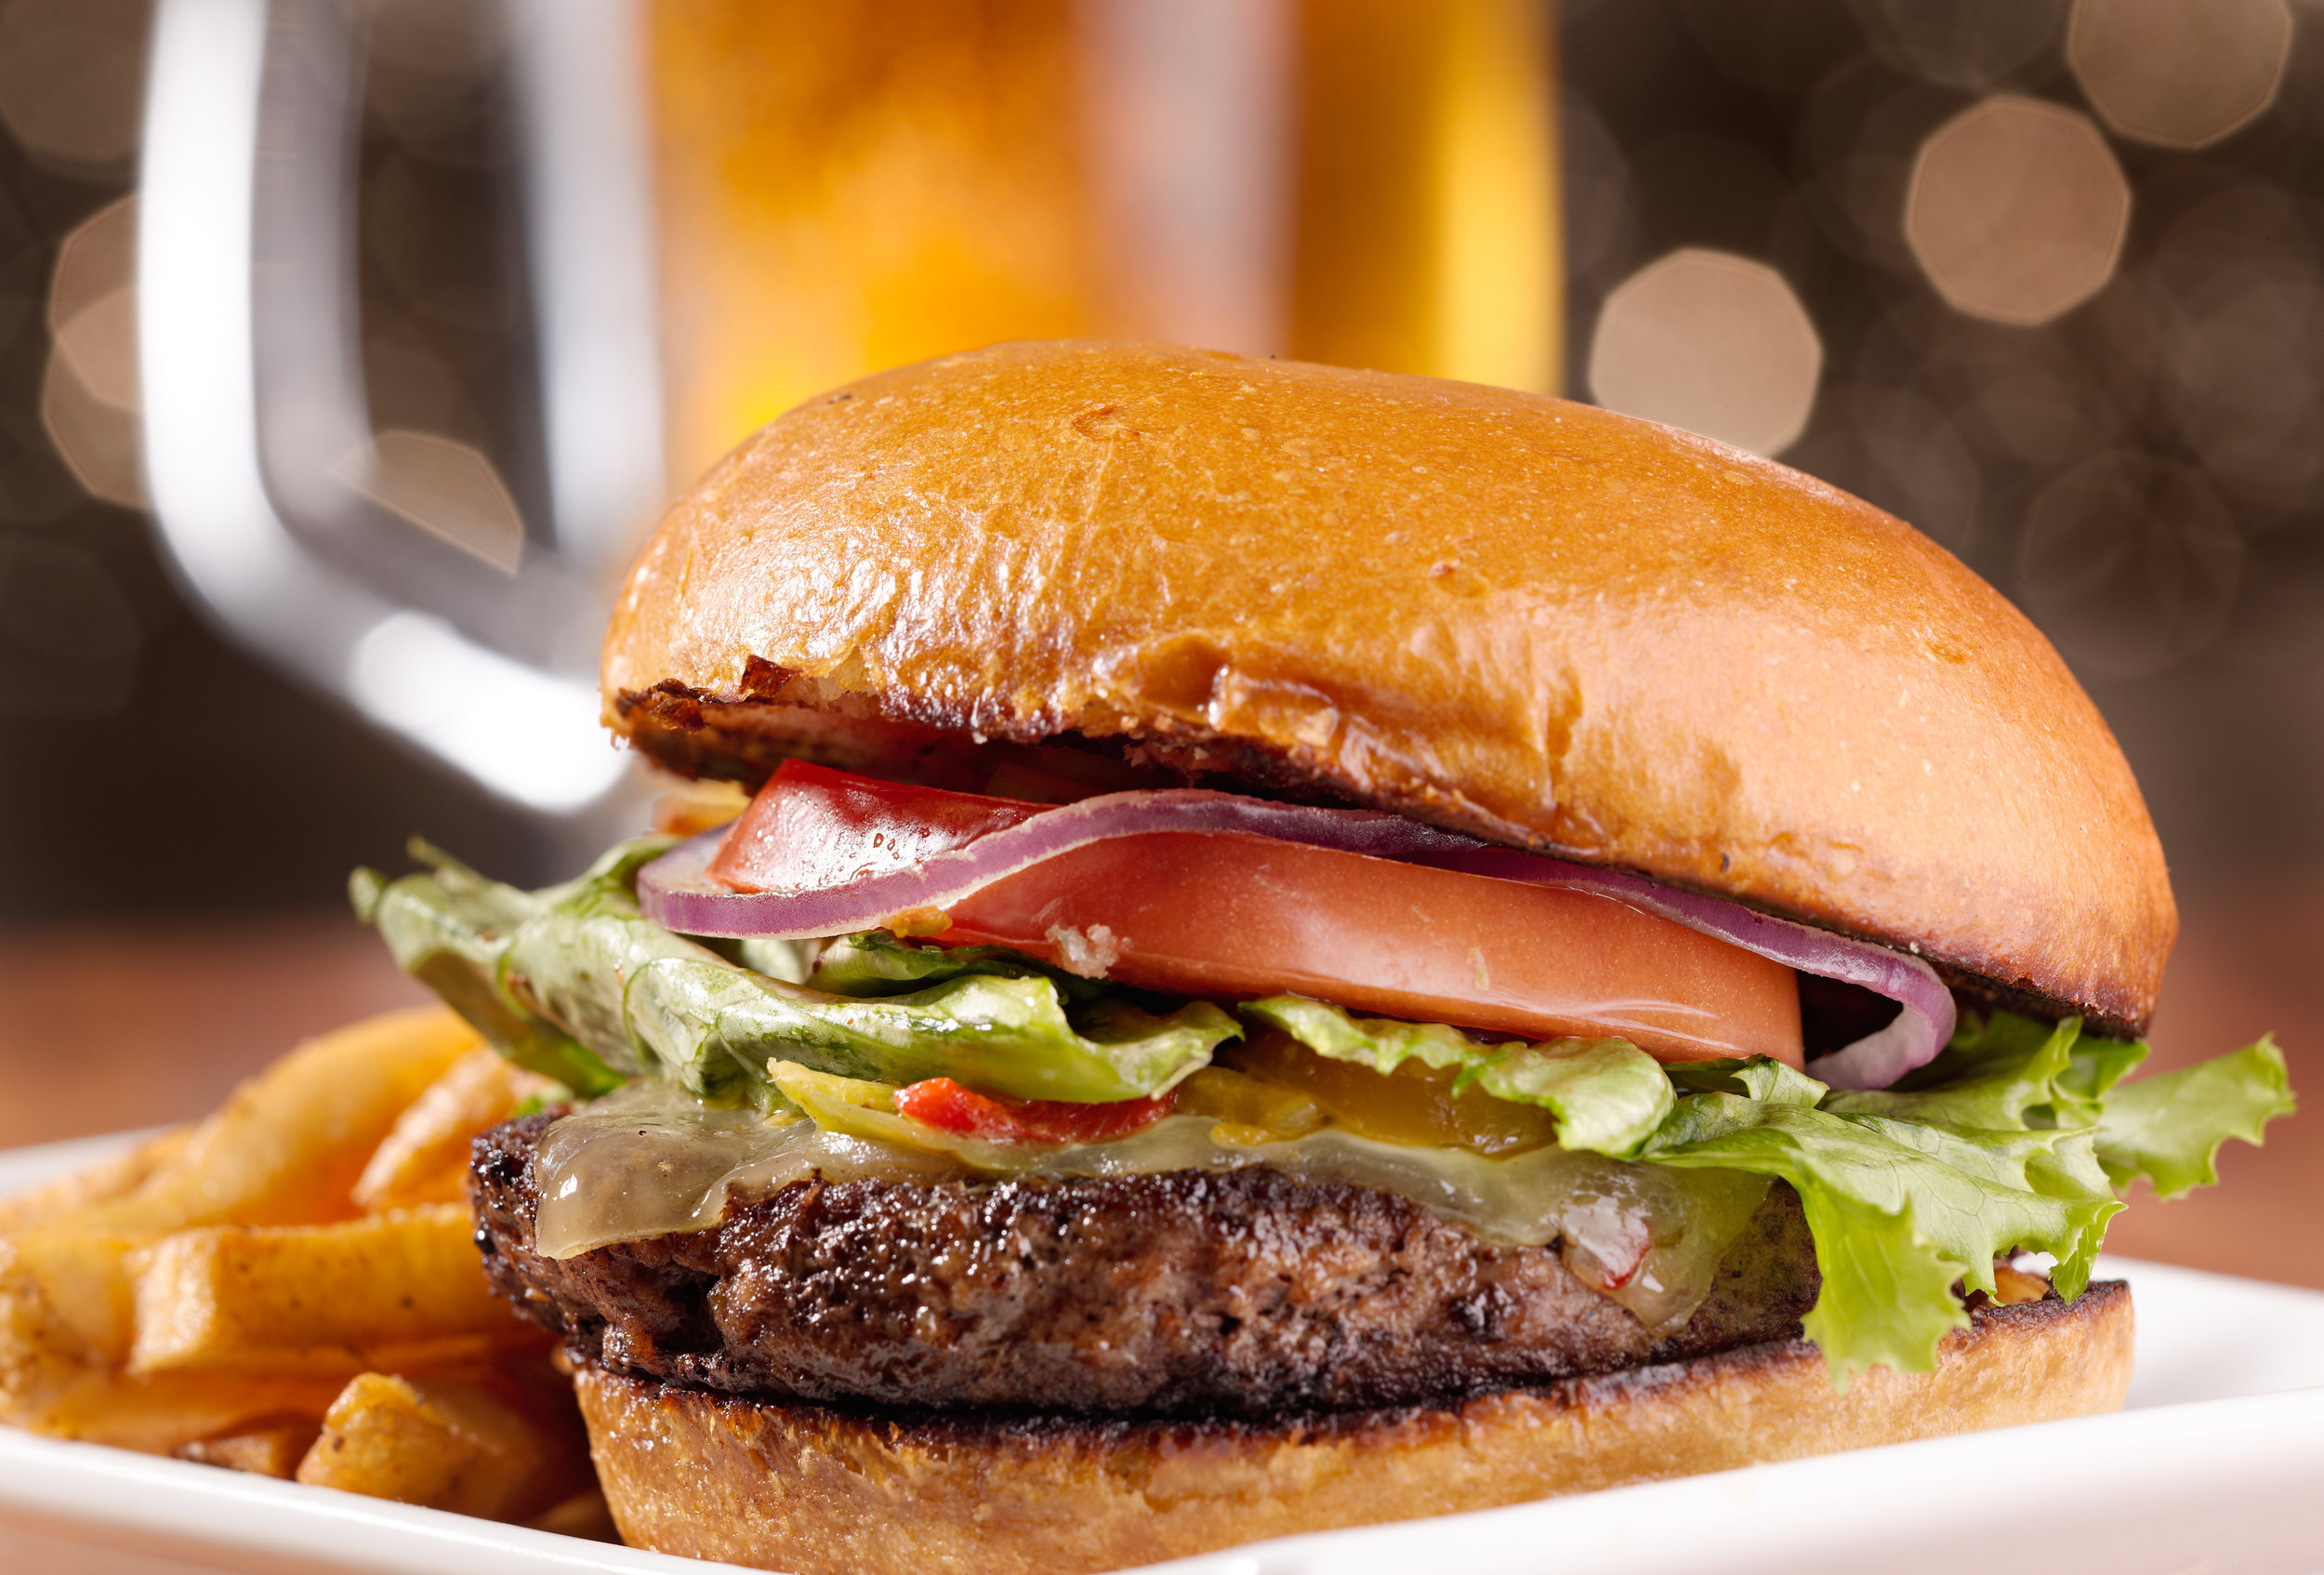 Burgers + Dogs - Our Burgers are Hand Pattied and 1/2 pound each! Burgers and Sandwiches are available on Regular, Wheat, or Jalapeno Bun; Dressed with Lettuce, Tomato, Pickle, Onion, and Mayonnaise.